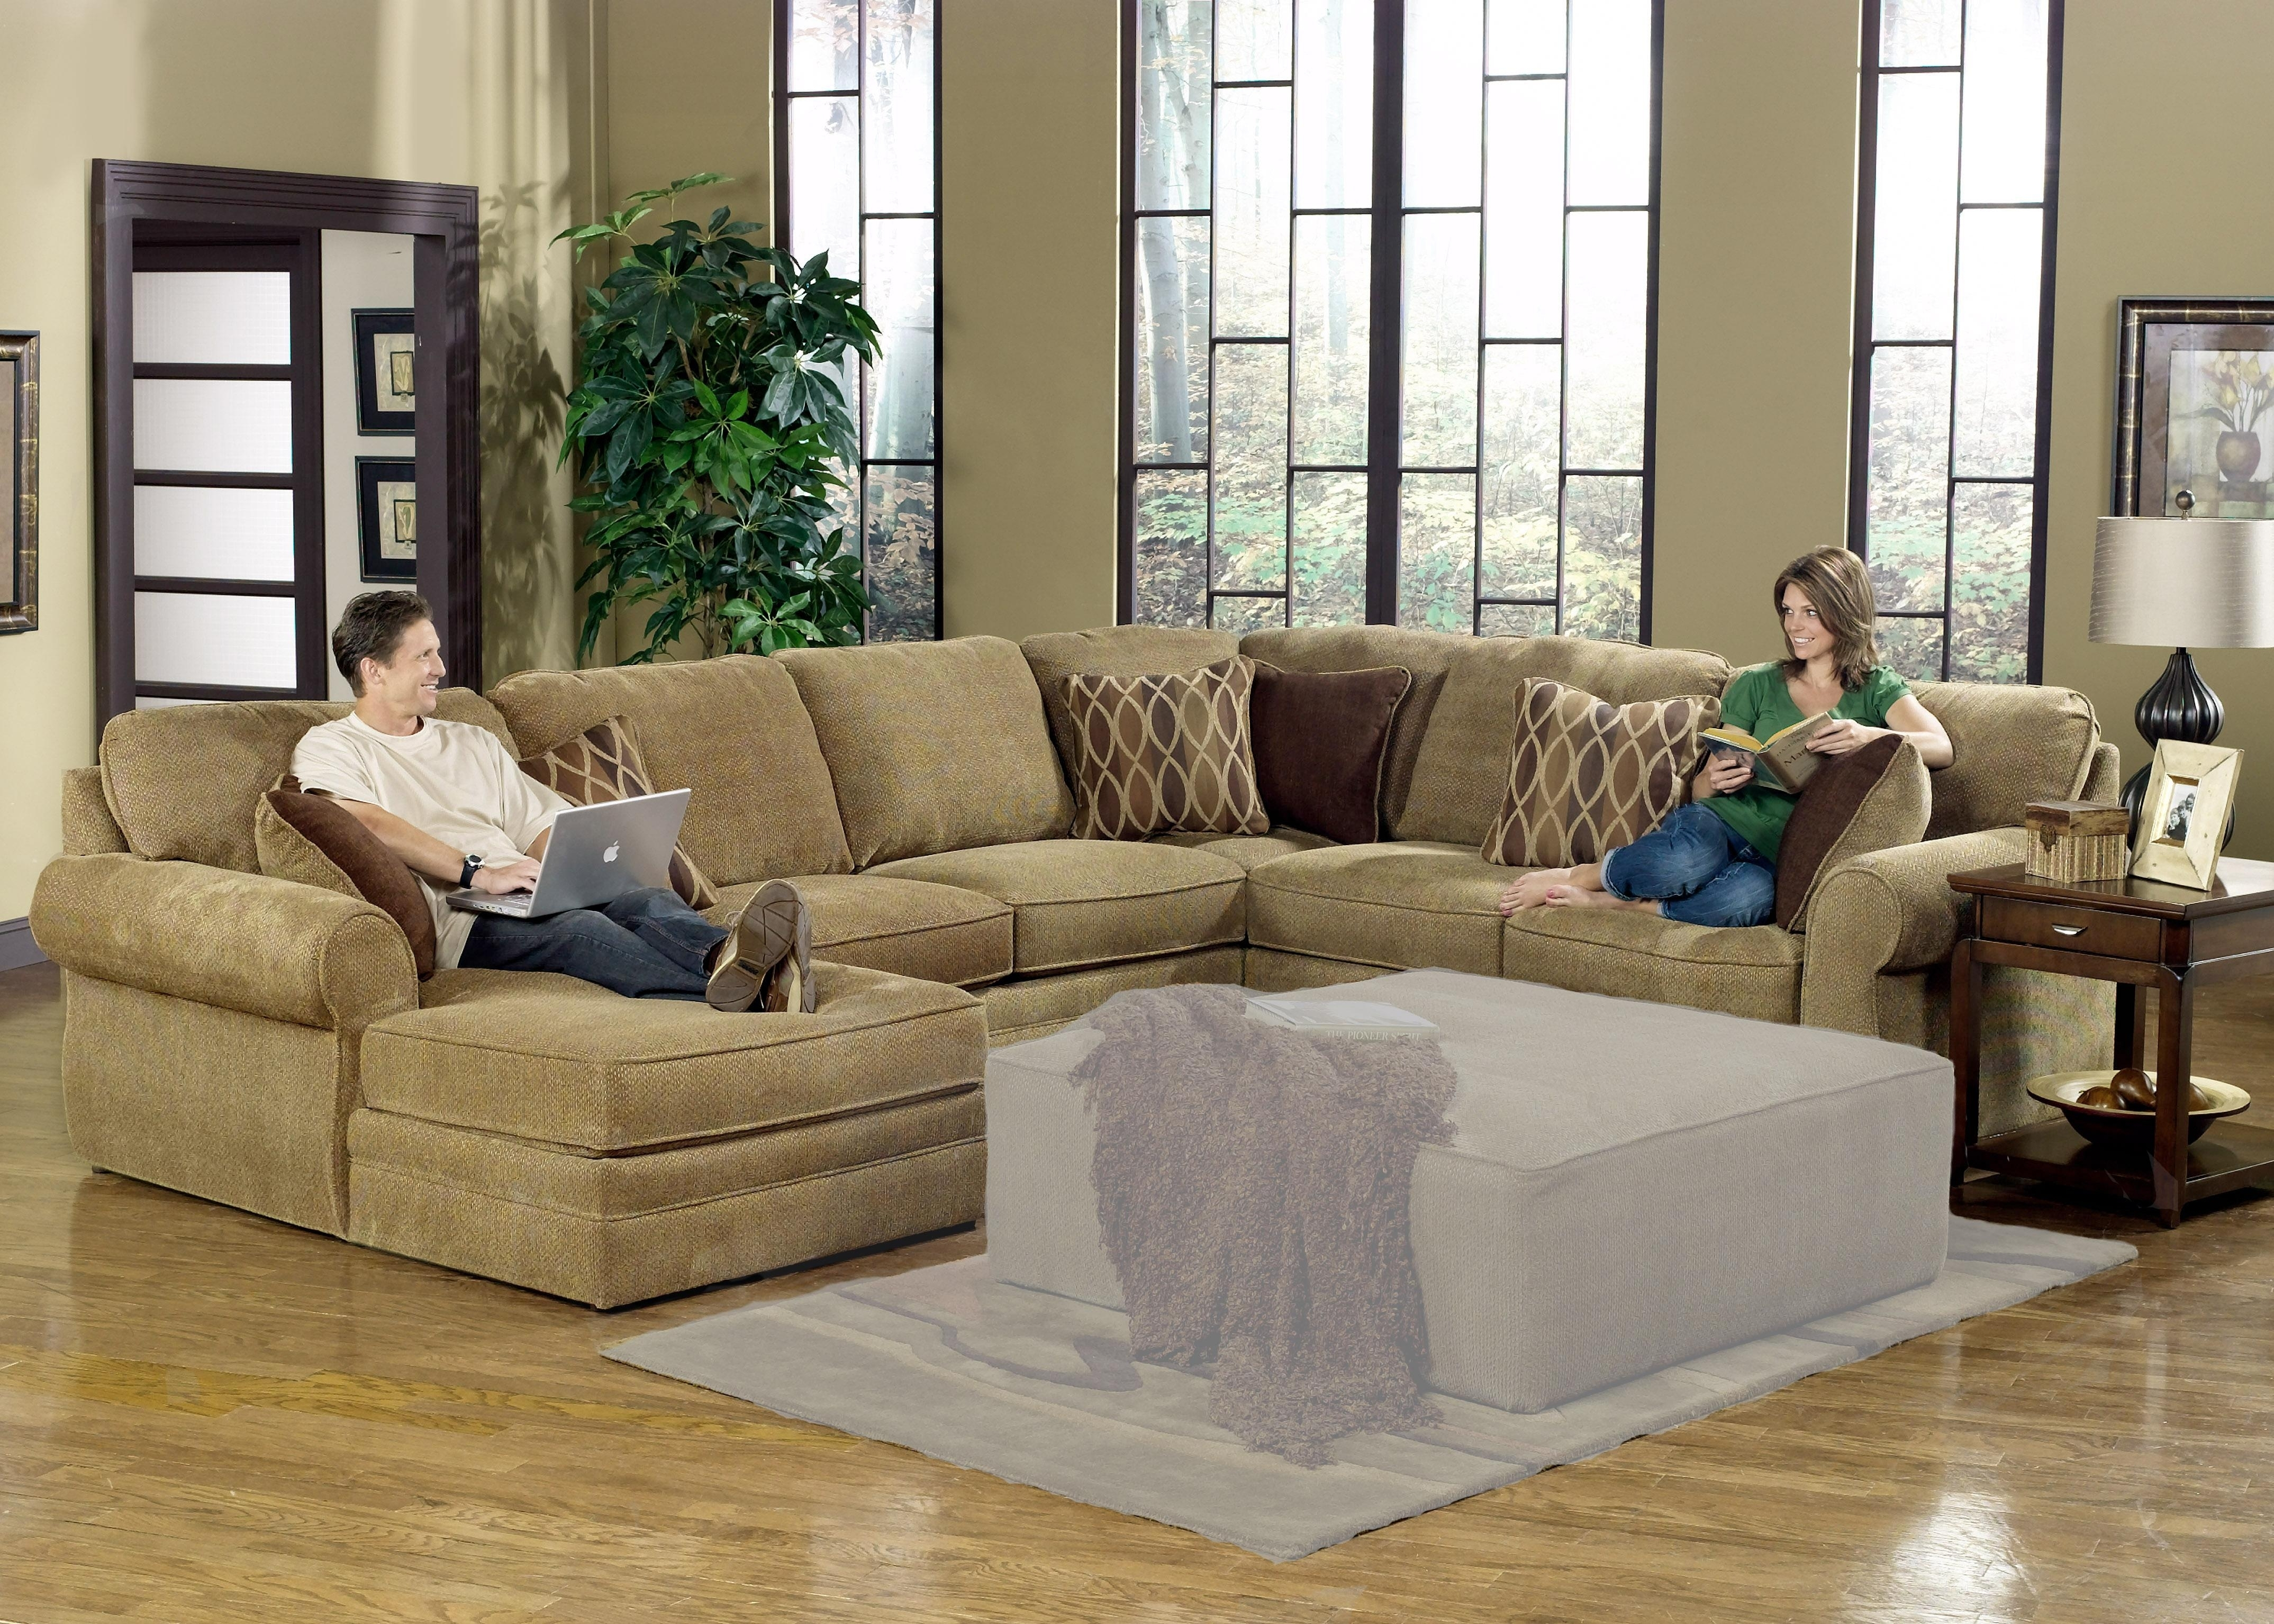 Remarkable Large Sectional Sofas With Chaise 39 With Additional In Ottawa Sectional Sofas (Image 9 of 10)